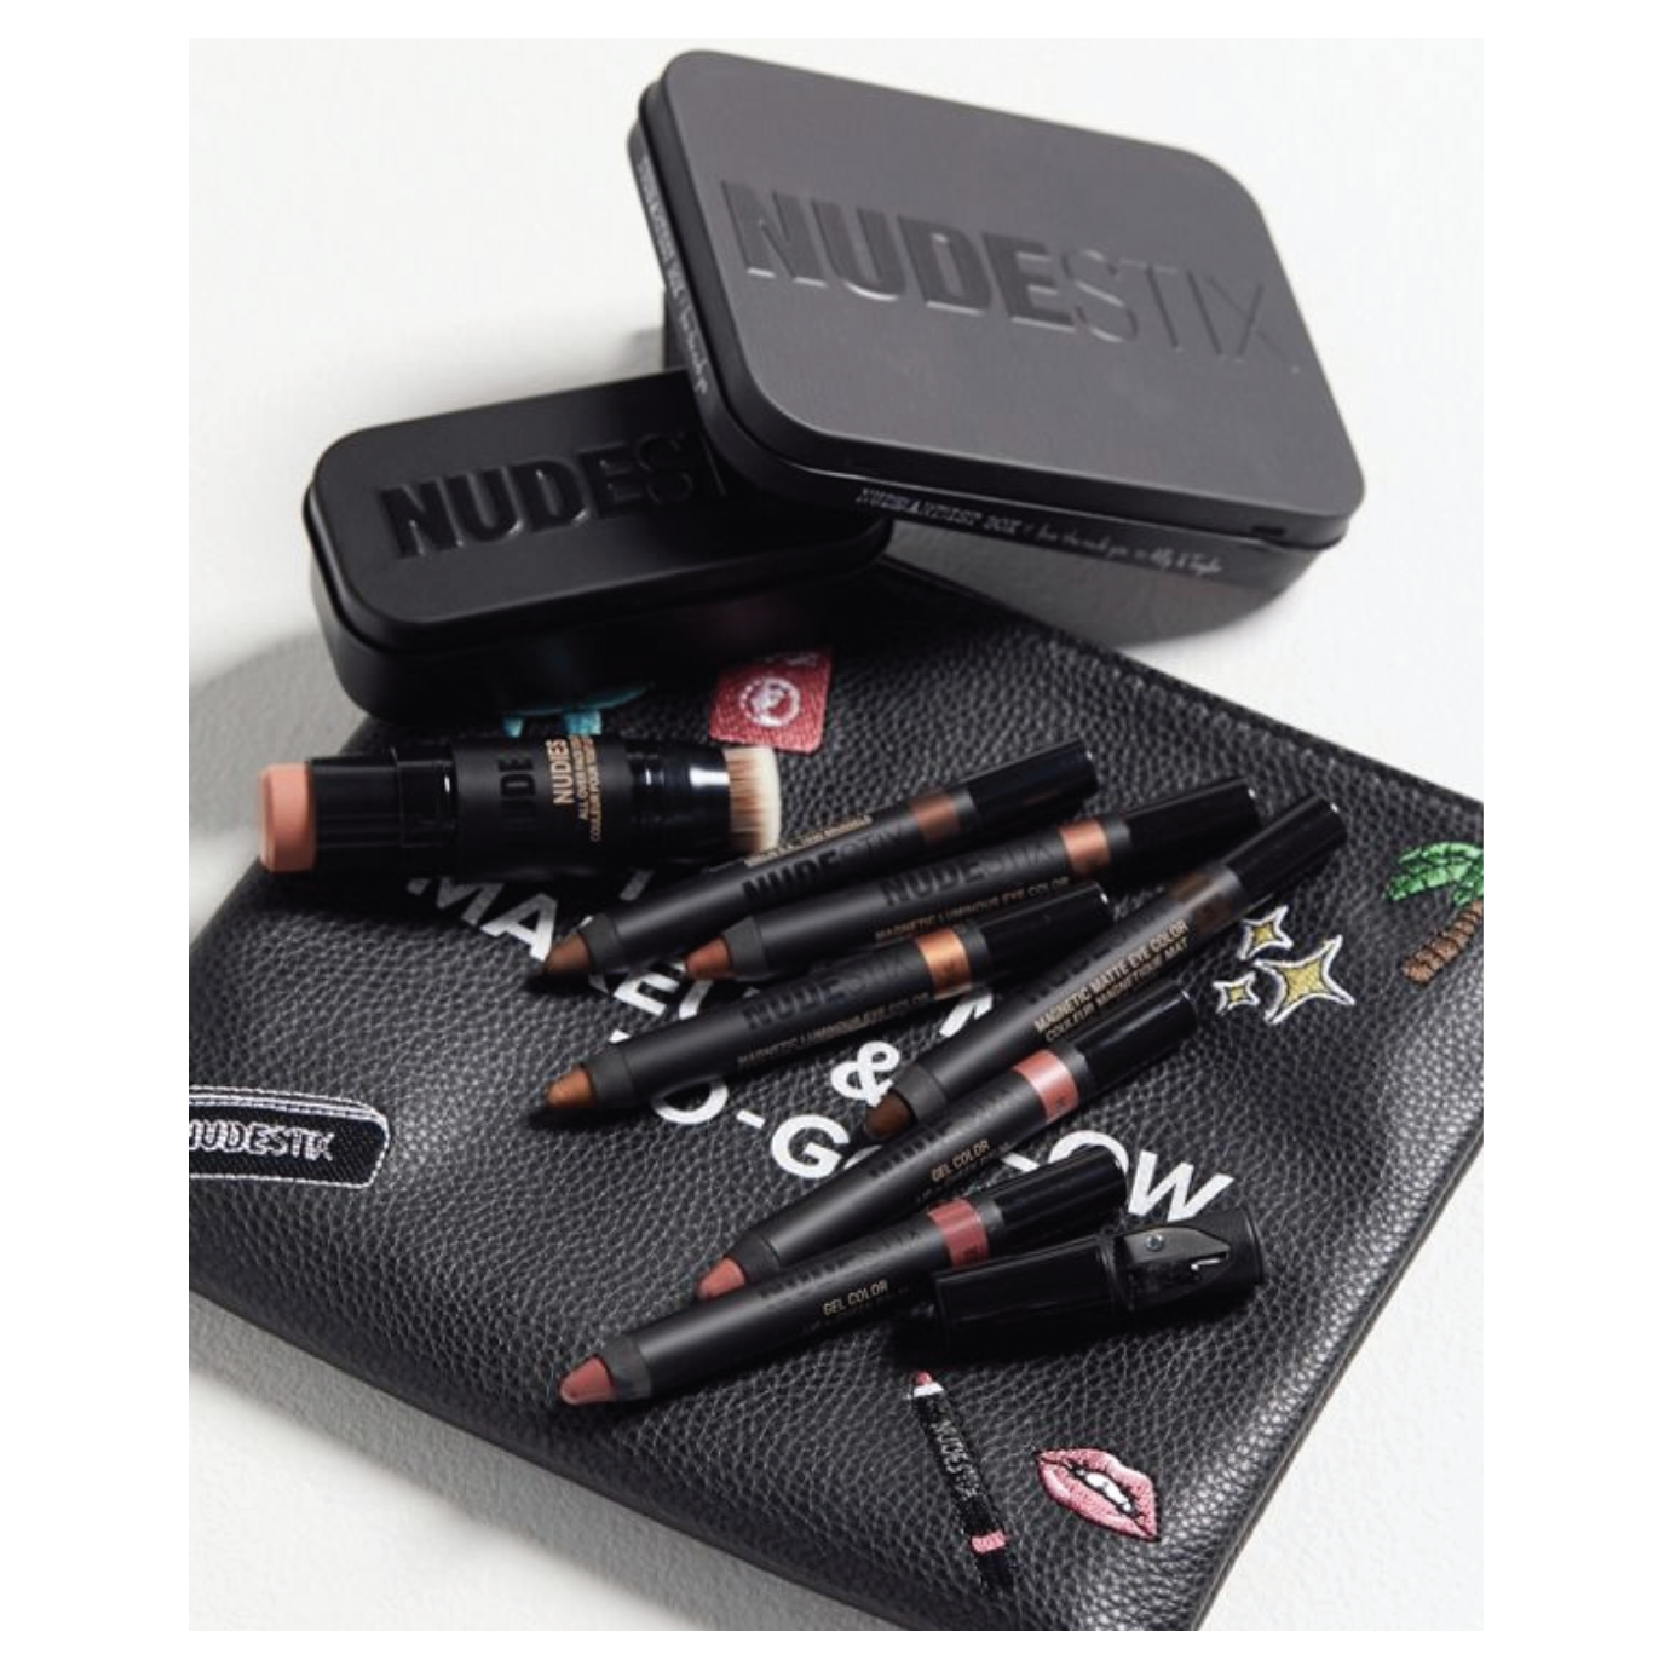 Nudestix x Mary Phillips The Jetsetter Set - $69 at Urban OutfittersI love the convenience of just swiping on a color and getting out the door. This is the prettiest stick set and I love the sisters behind this brand!